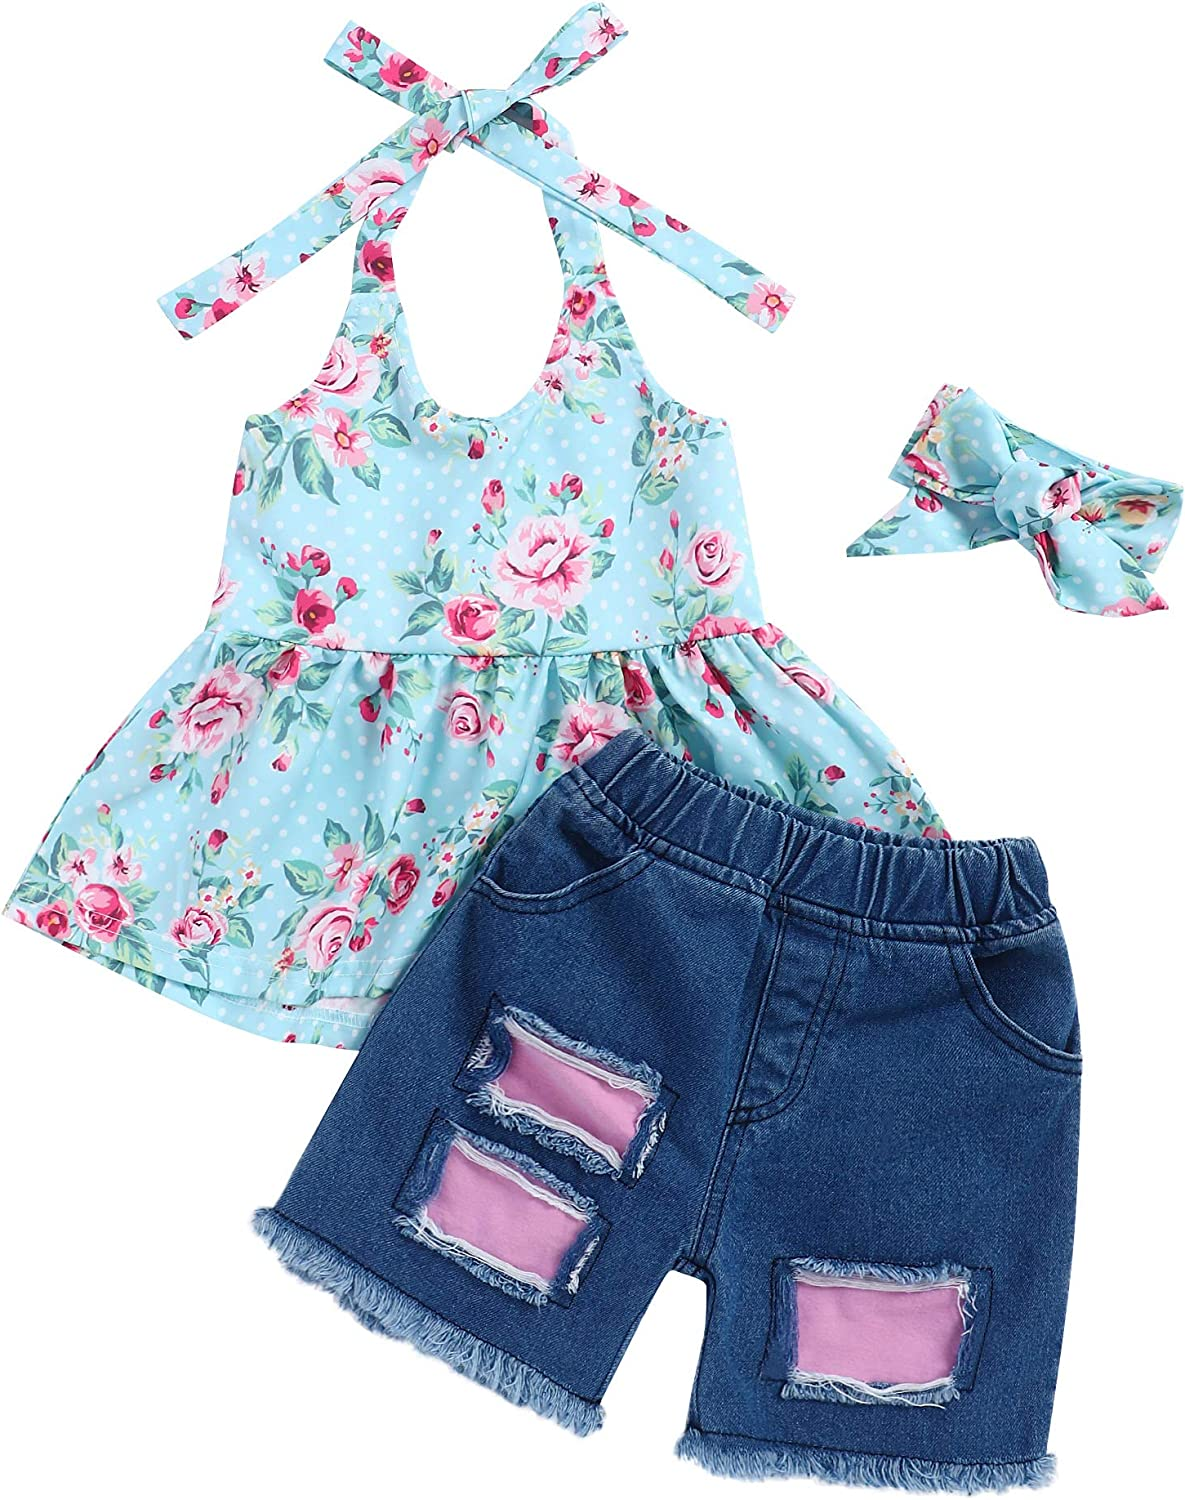 Toddler Baby Girl Summer Clothes Lacing Floral Top Vest Ripped Jeans with Headband Summer Outfit Sets